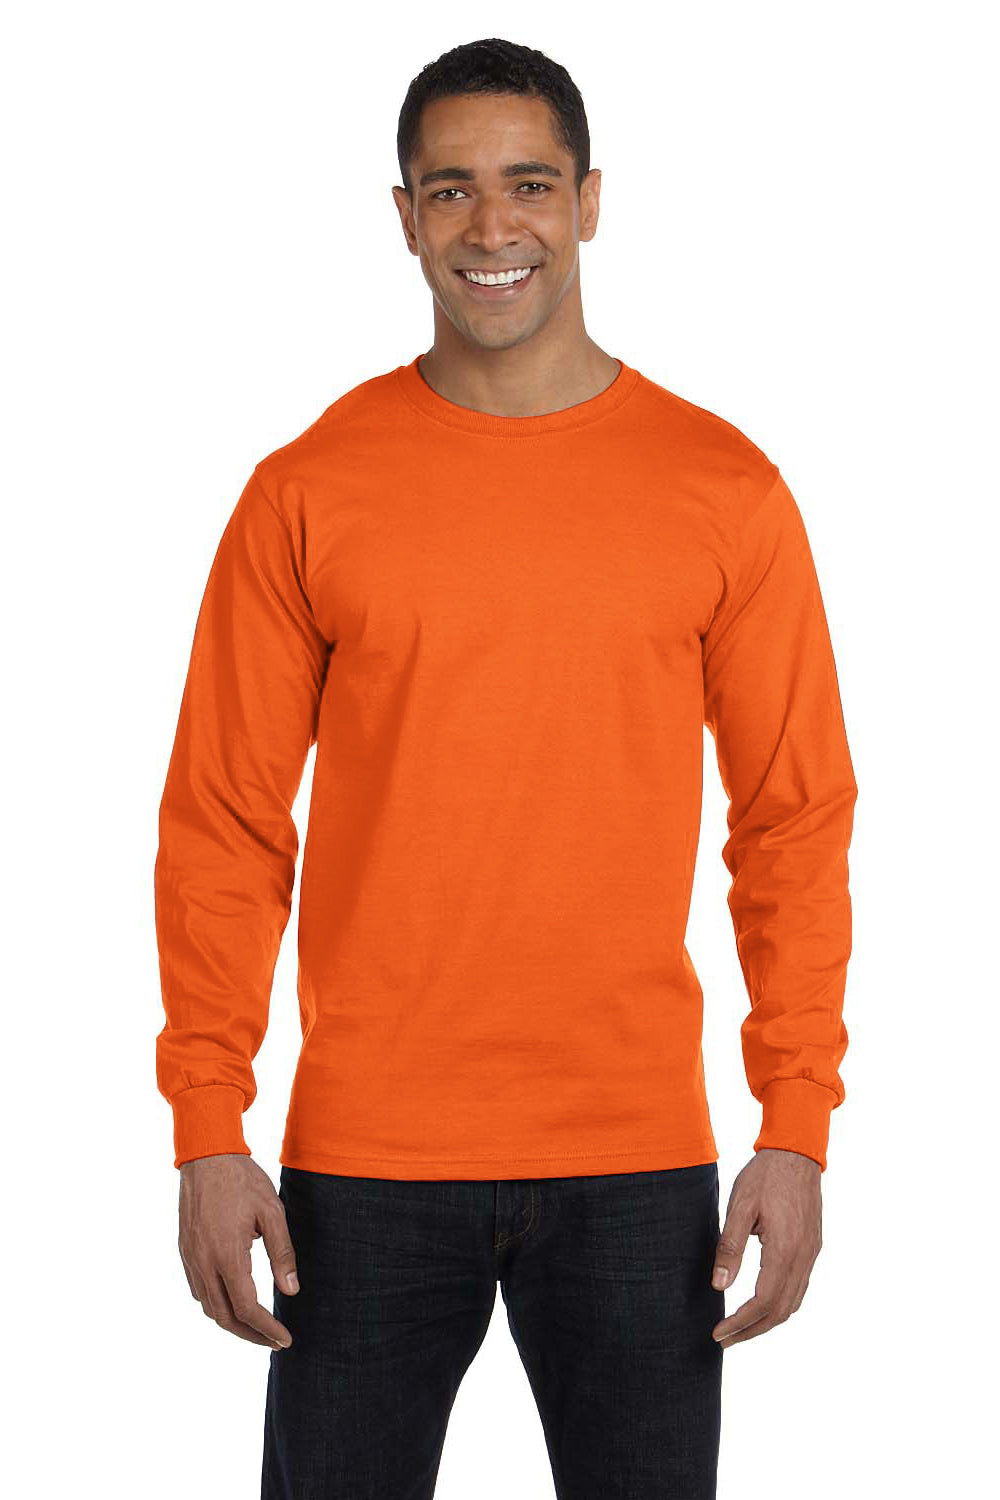 Gildan G840 Mens DryBlend Moisture Wicking Long Sleeve Crewneck T-Shirt Safety Orange Front